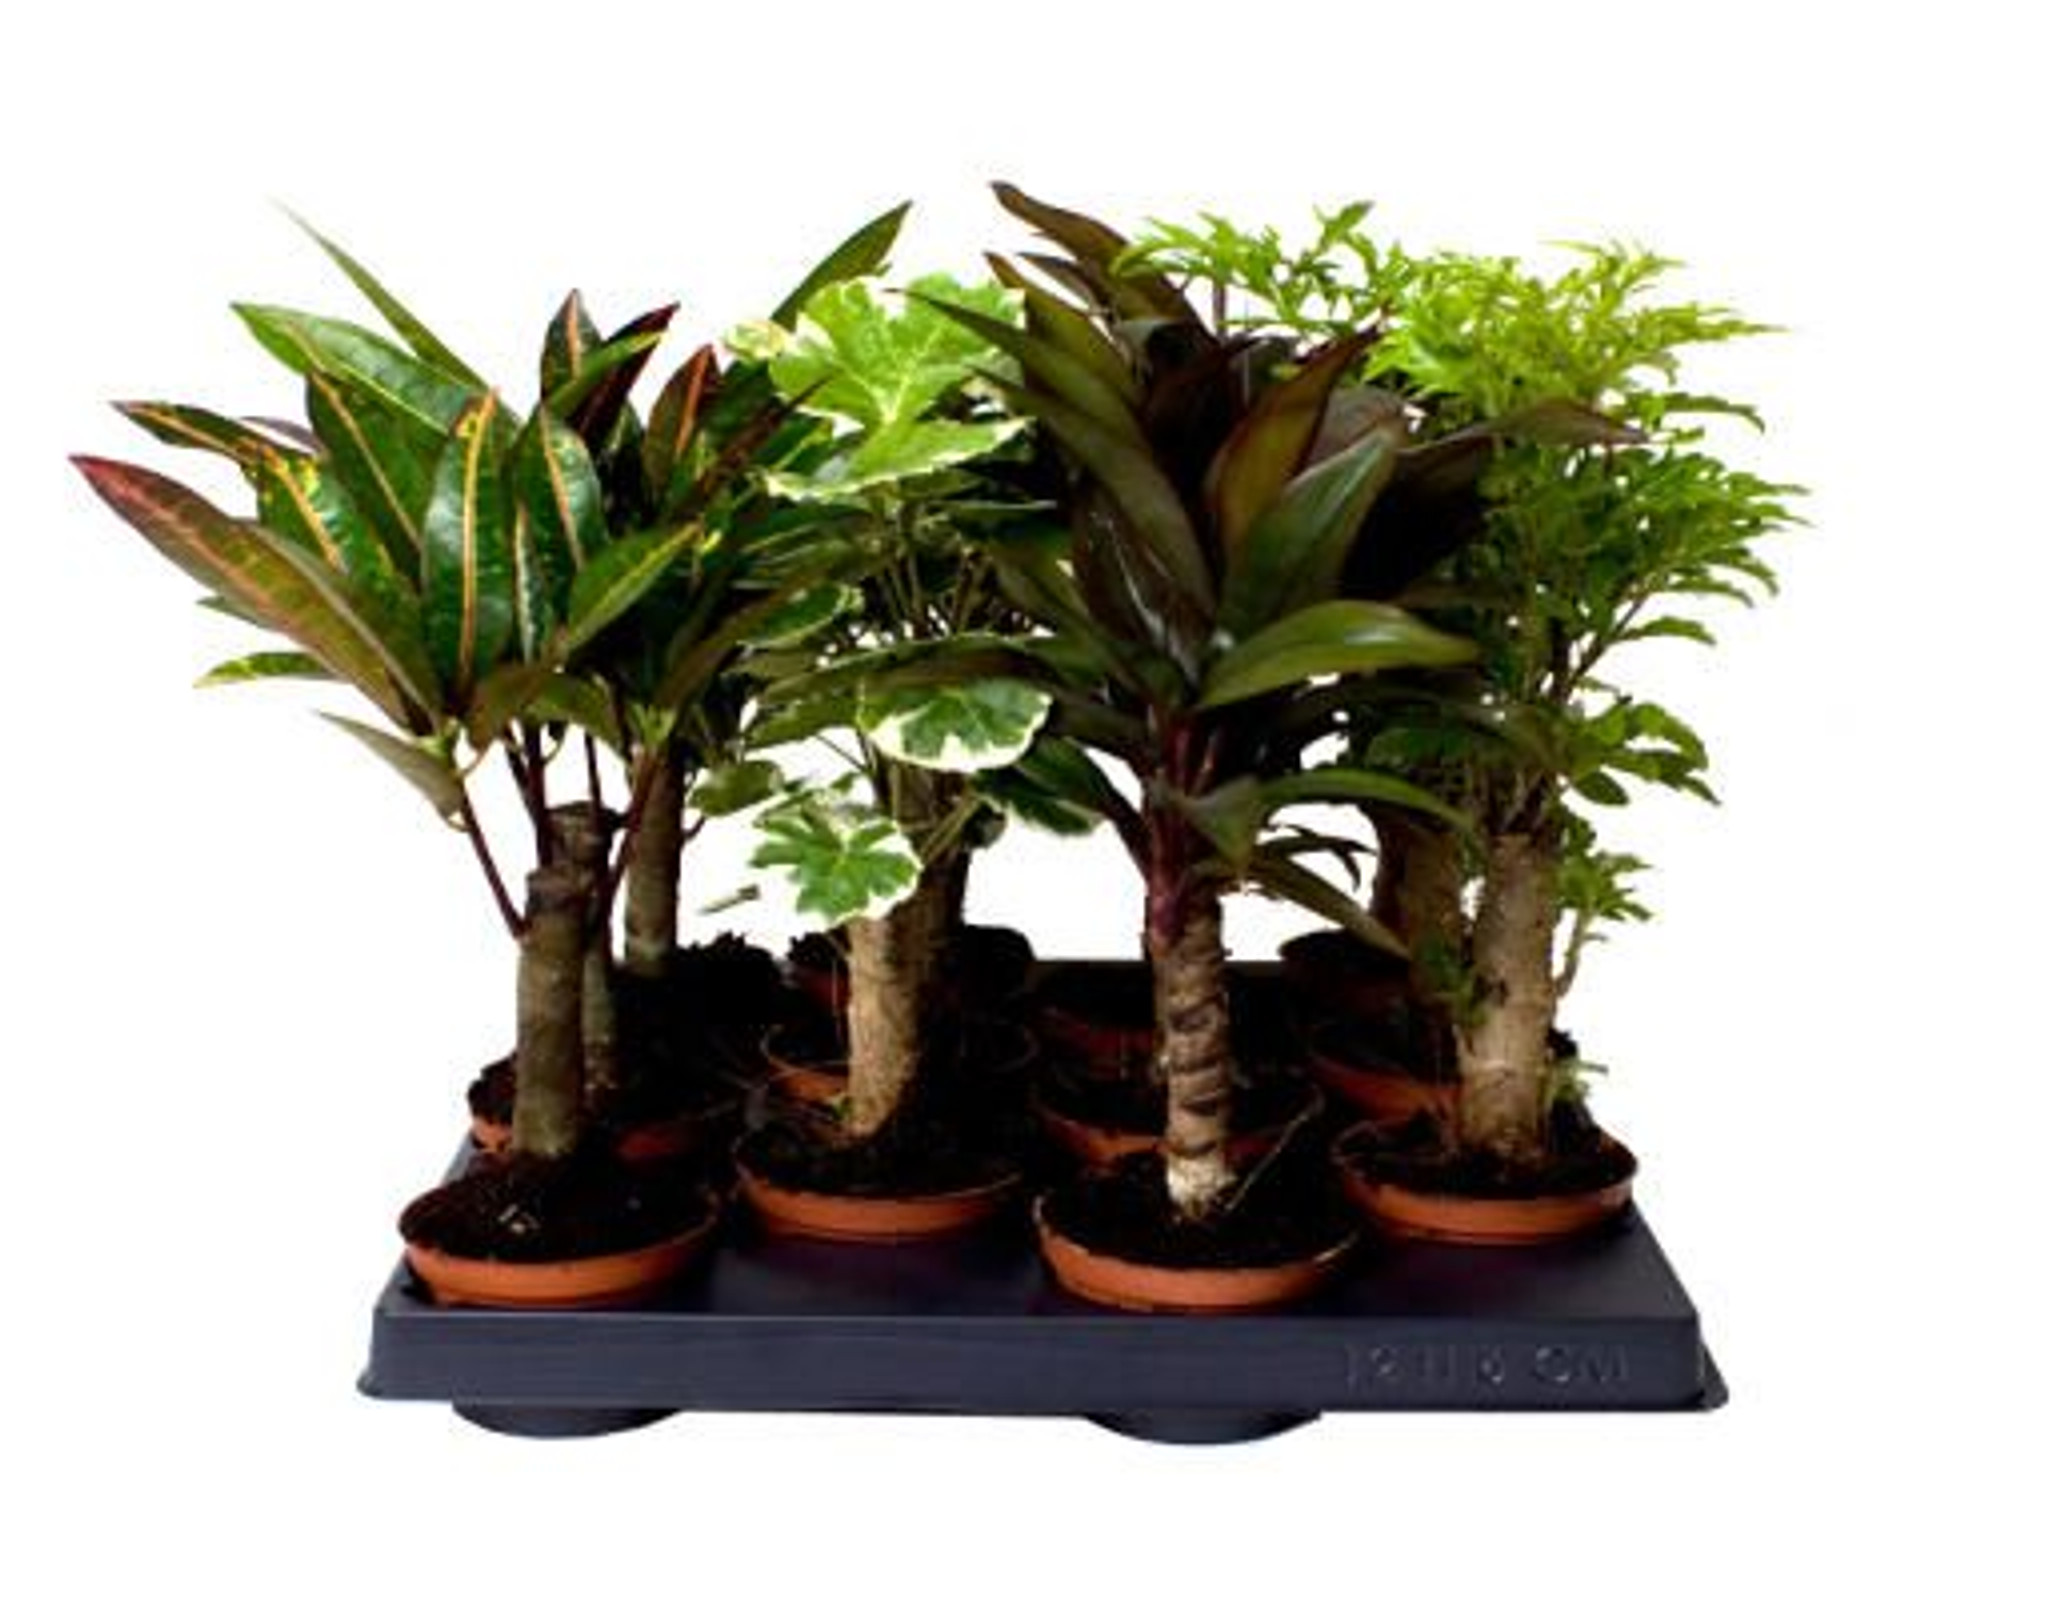 Stem mix- Great mix of long-stemmed indoor plants for your home or office- Add a touch of the outdoors to your home- Easy to care for indoor plants- 4 plants set or just 1 plant option